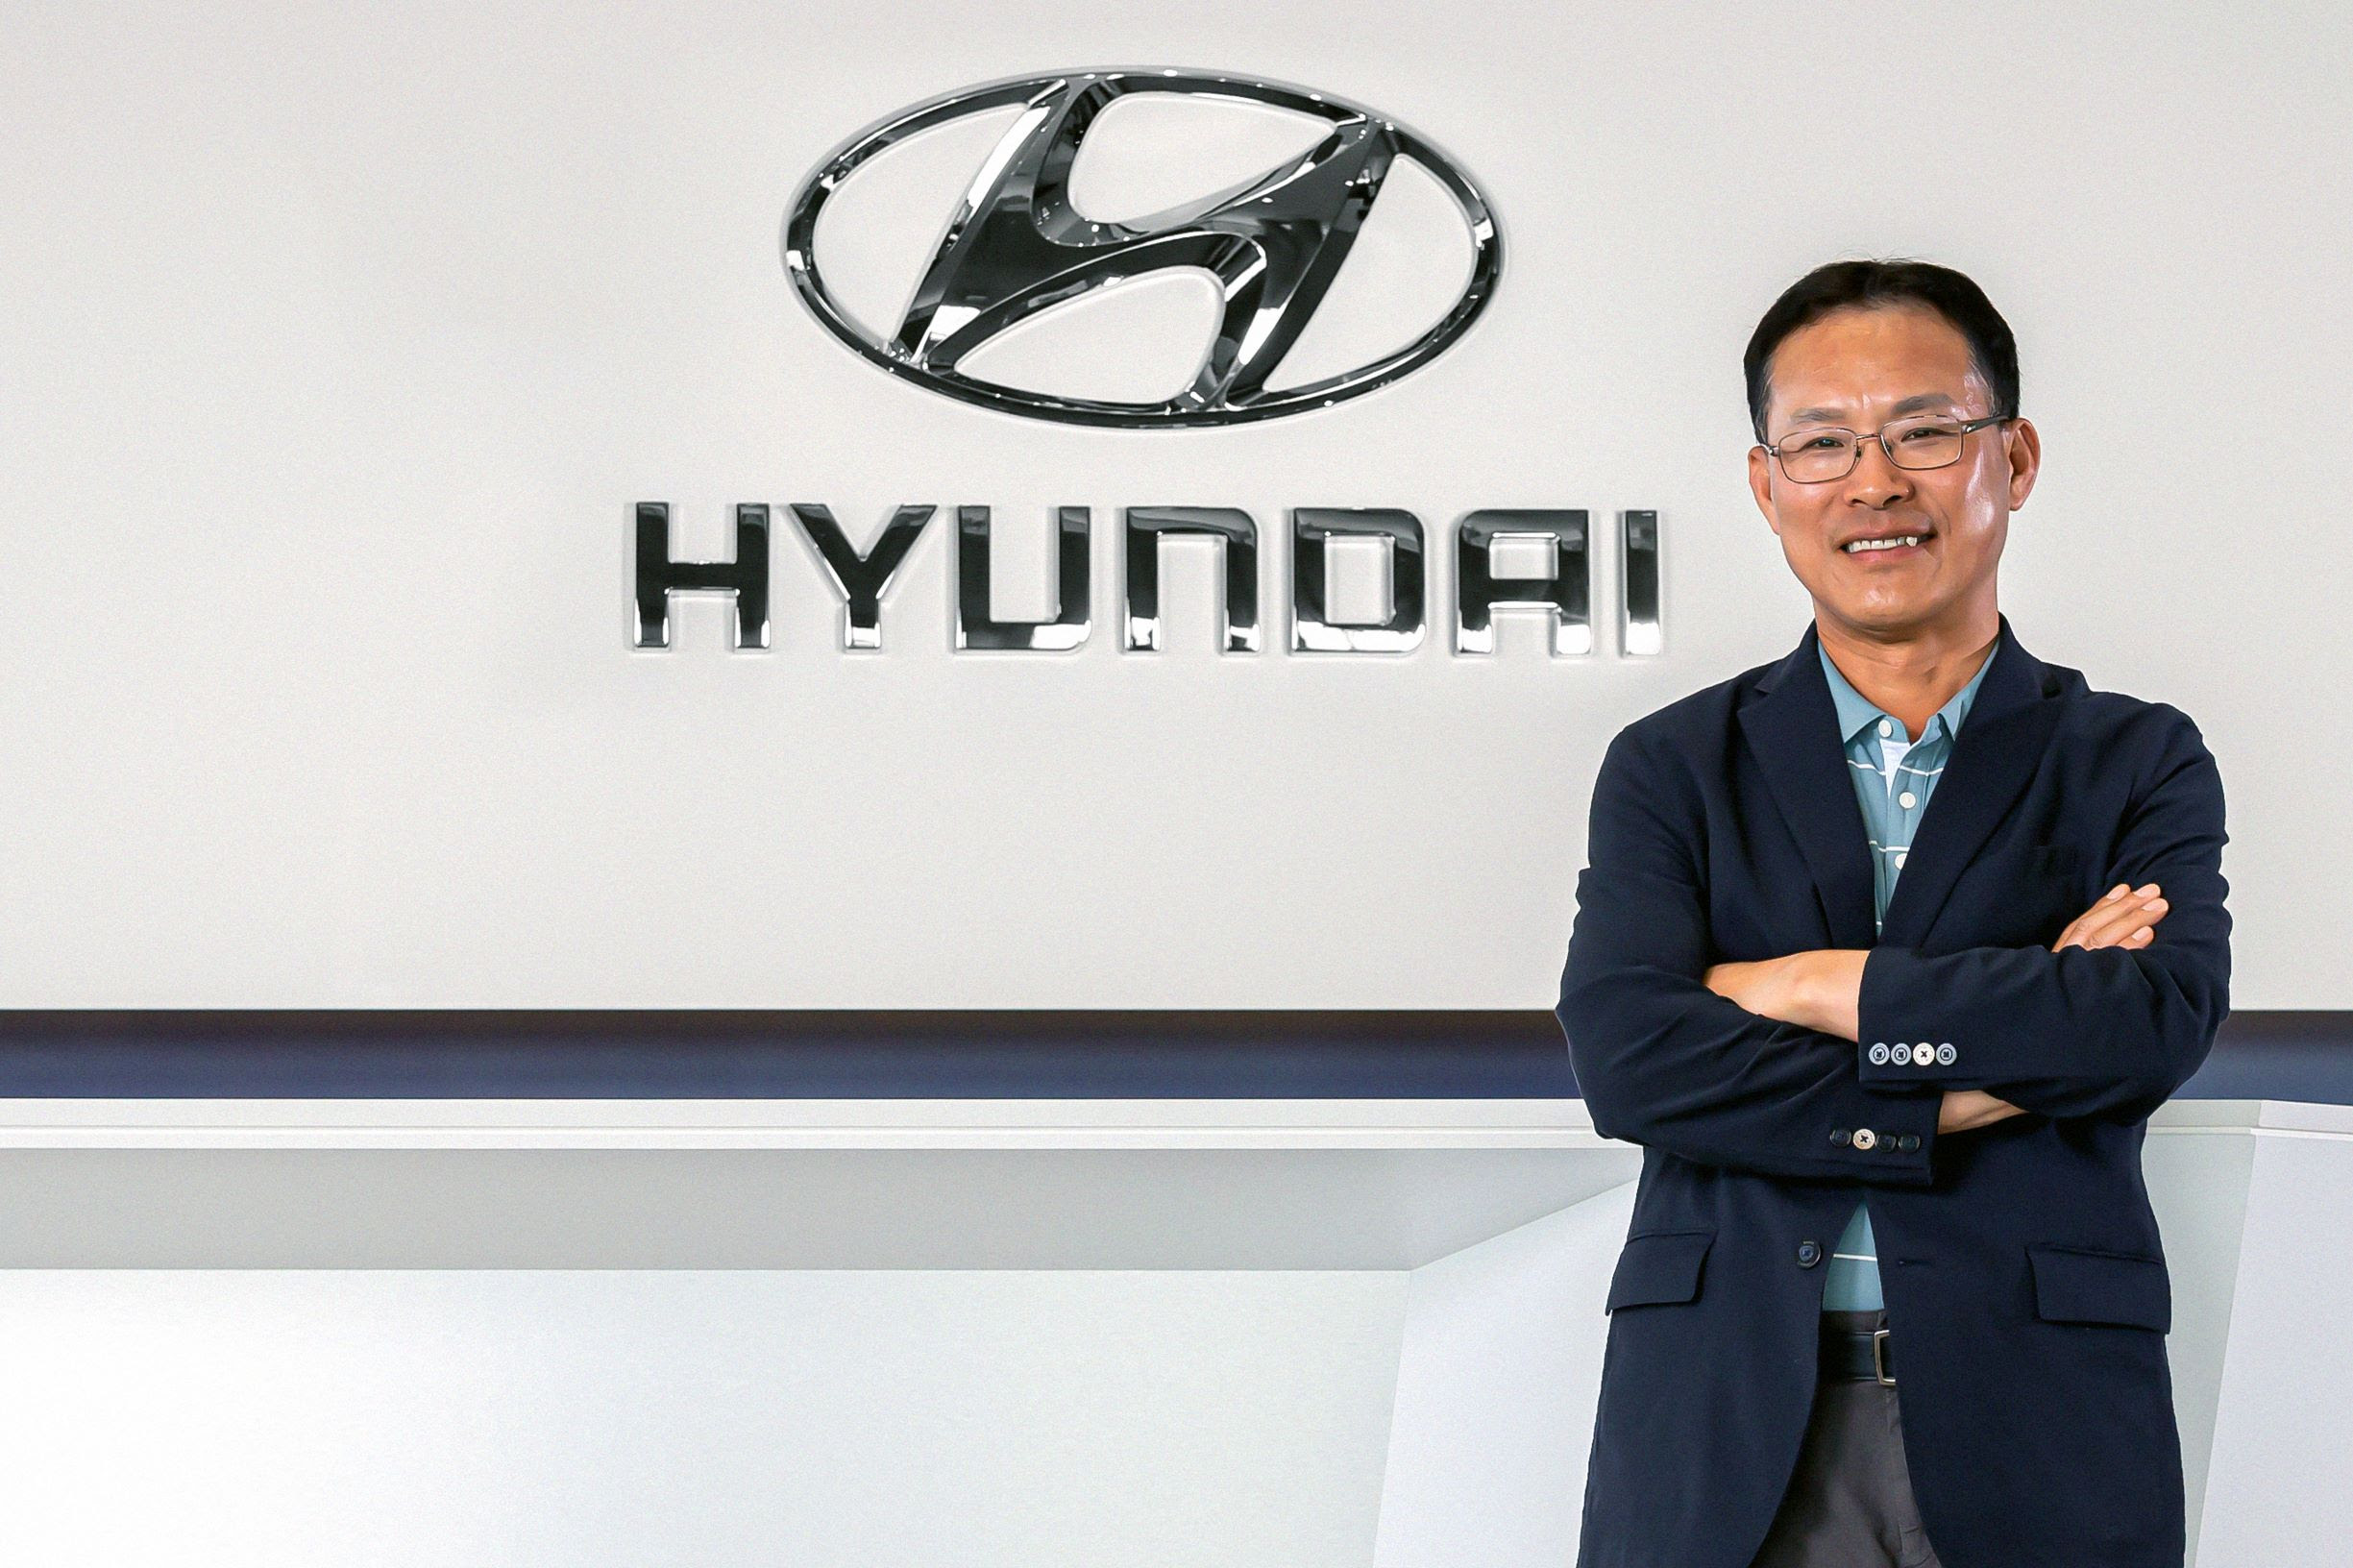 Hyundai donates medical and protection equipment items worth USD $2.4 million to Middle East and Africa countries to fight COVID-19